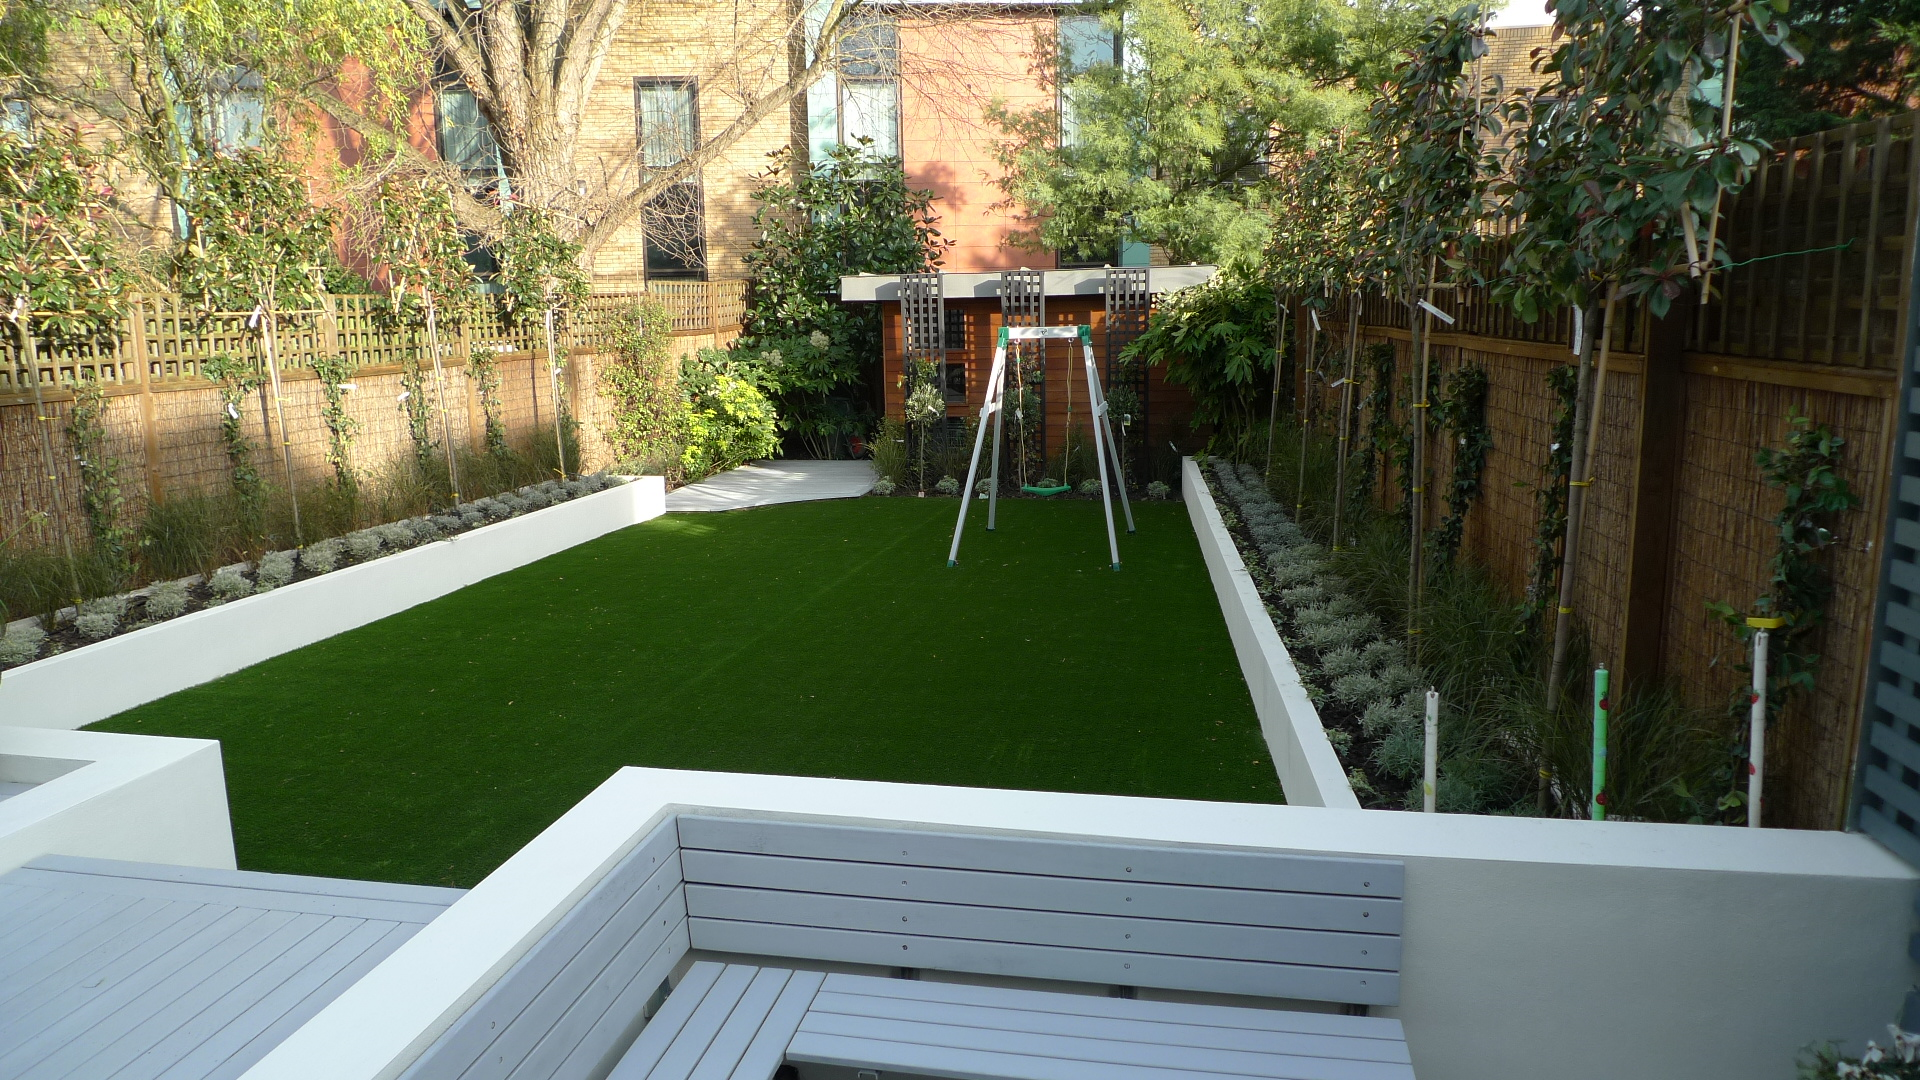 Modern garden design ideas london london garden design for Garden design tips